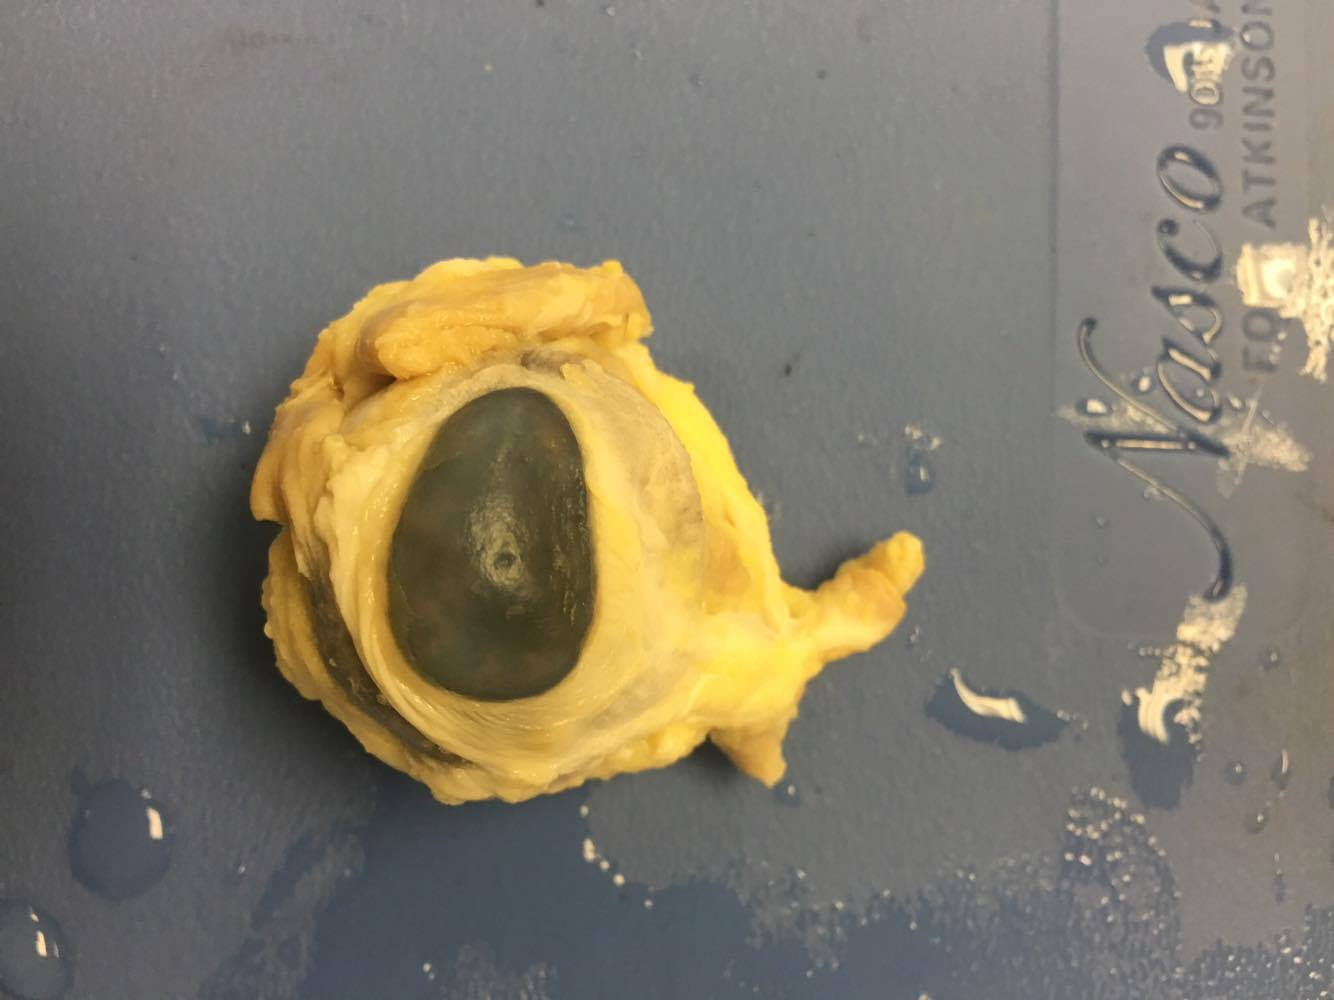 Anatomy And Physiology Blog Sheep Eye Dissection